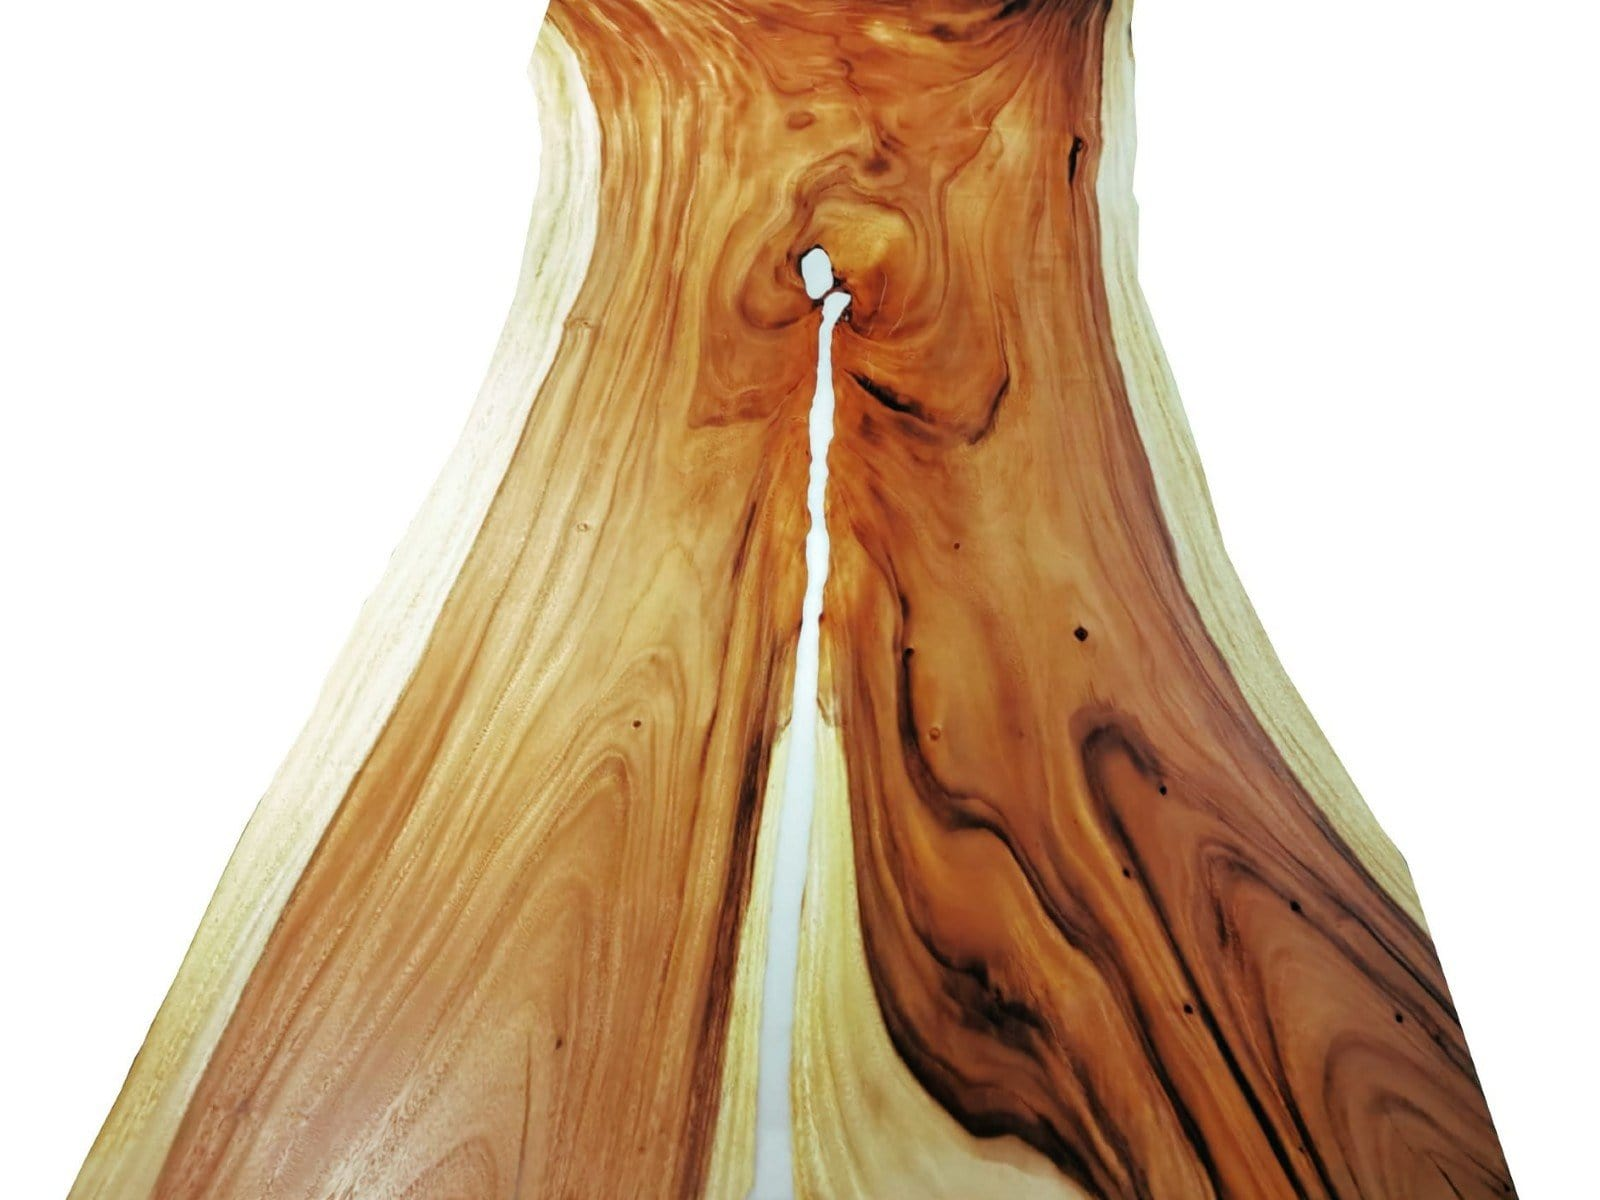 Top View Of Finished Acacia Wood Slab With White Epoxy Resin Inlays